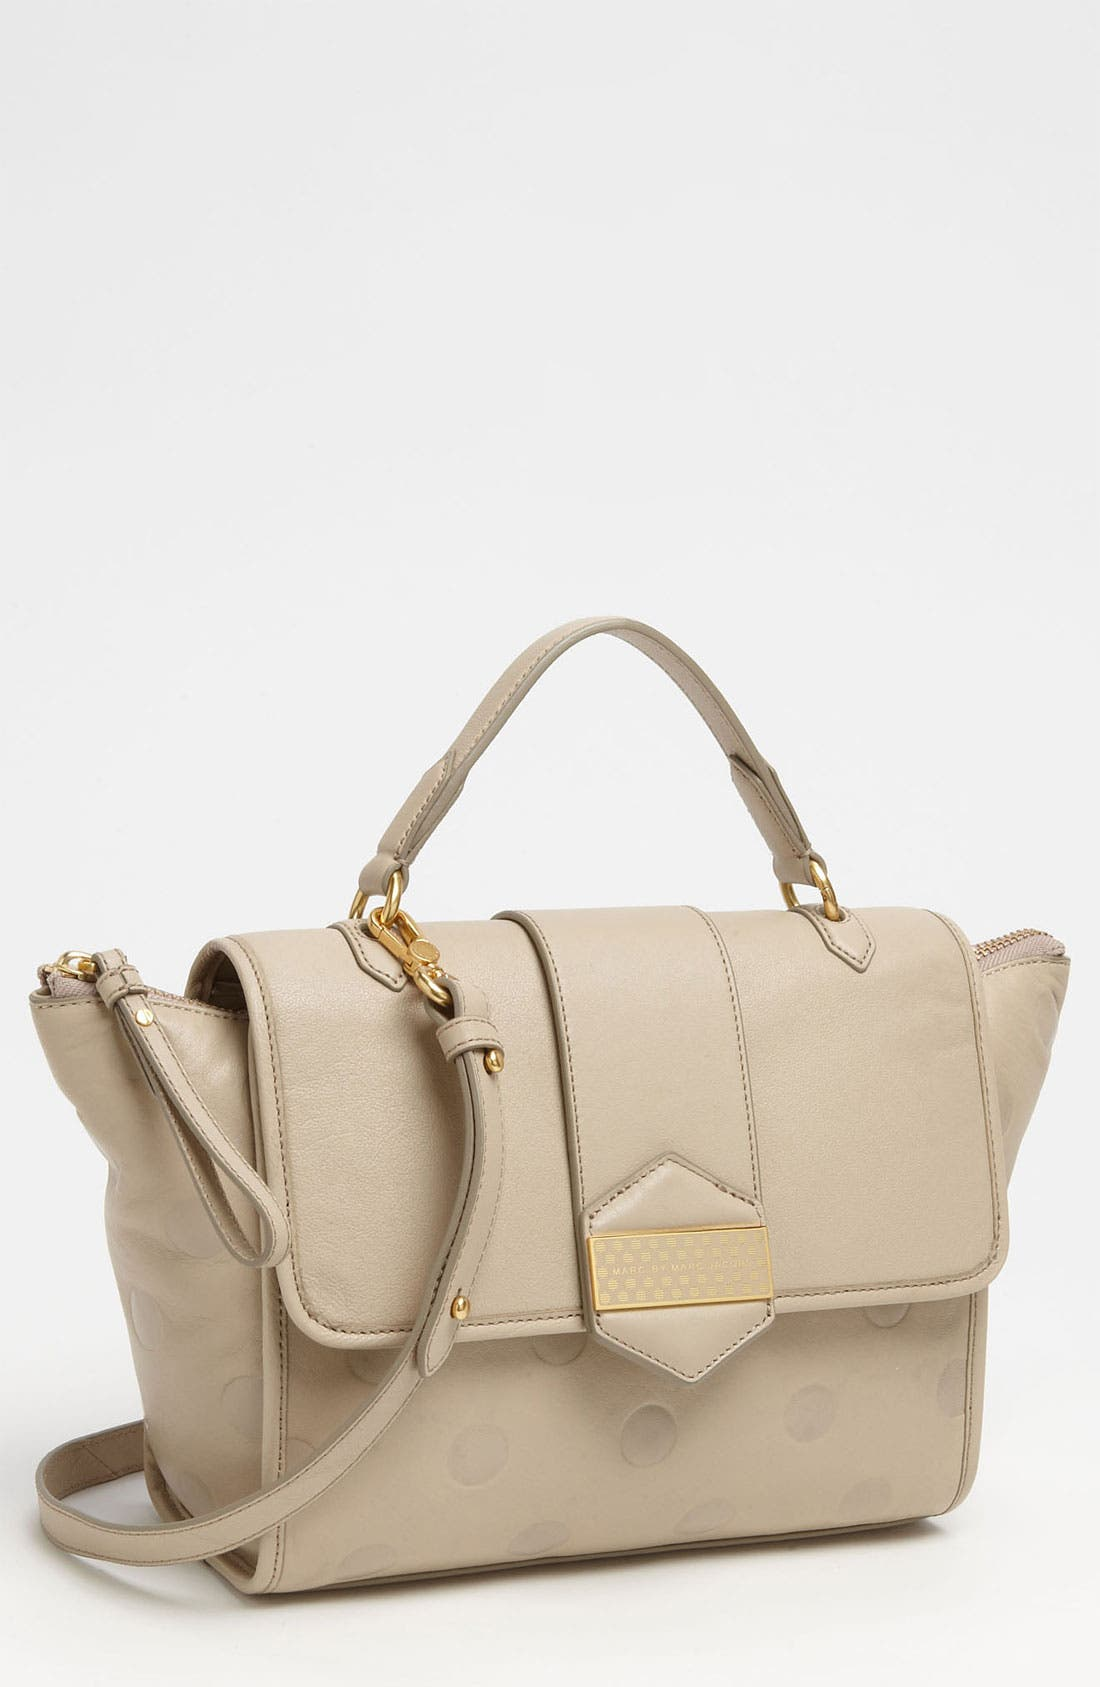 Main Image - MARC BY MARC JACOBS 'Flipping Dots' Top Handle Satchel